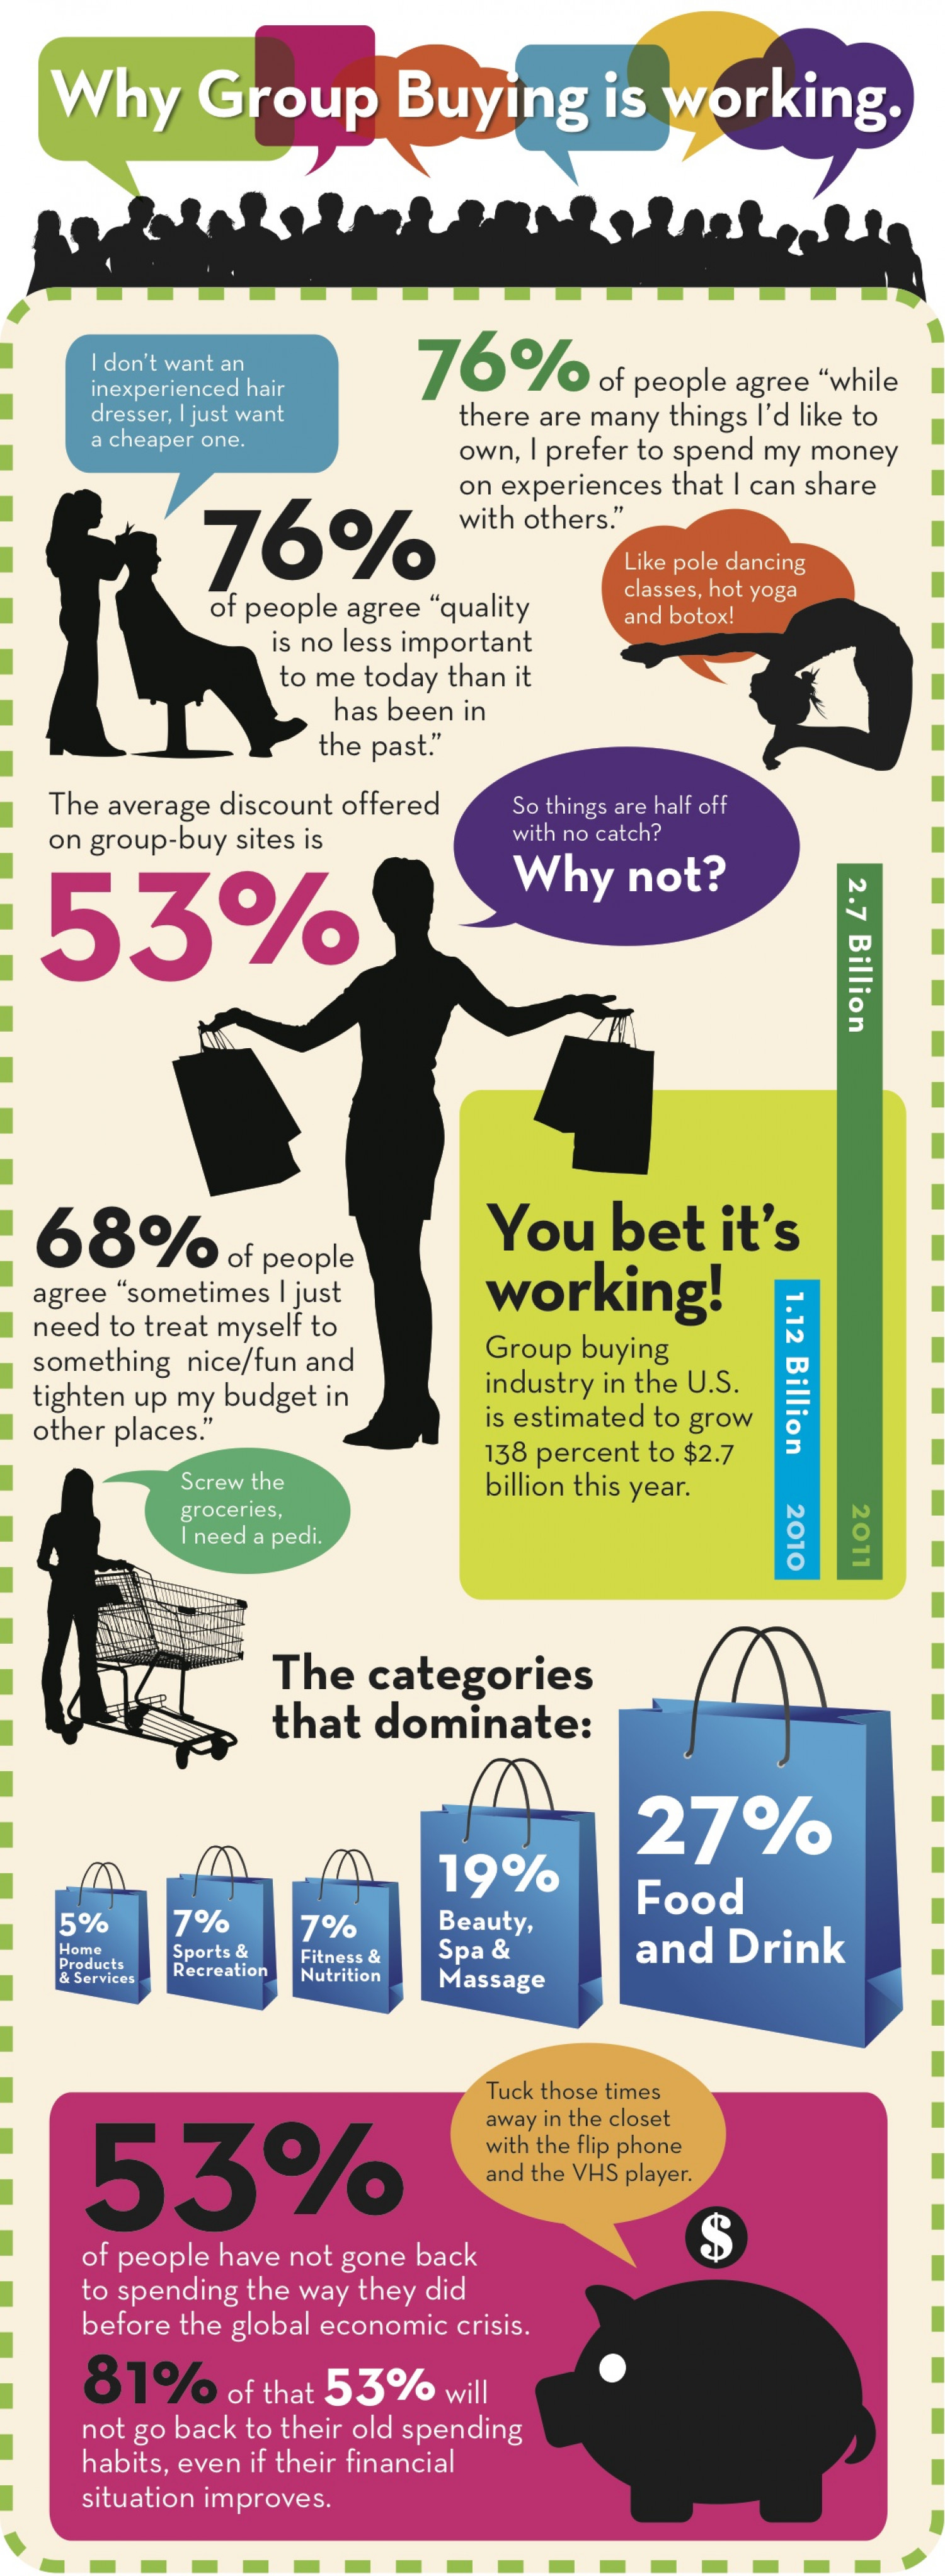 Group Buying Phenomenon Infographic